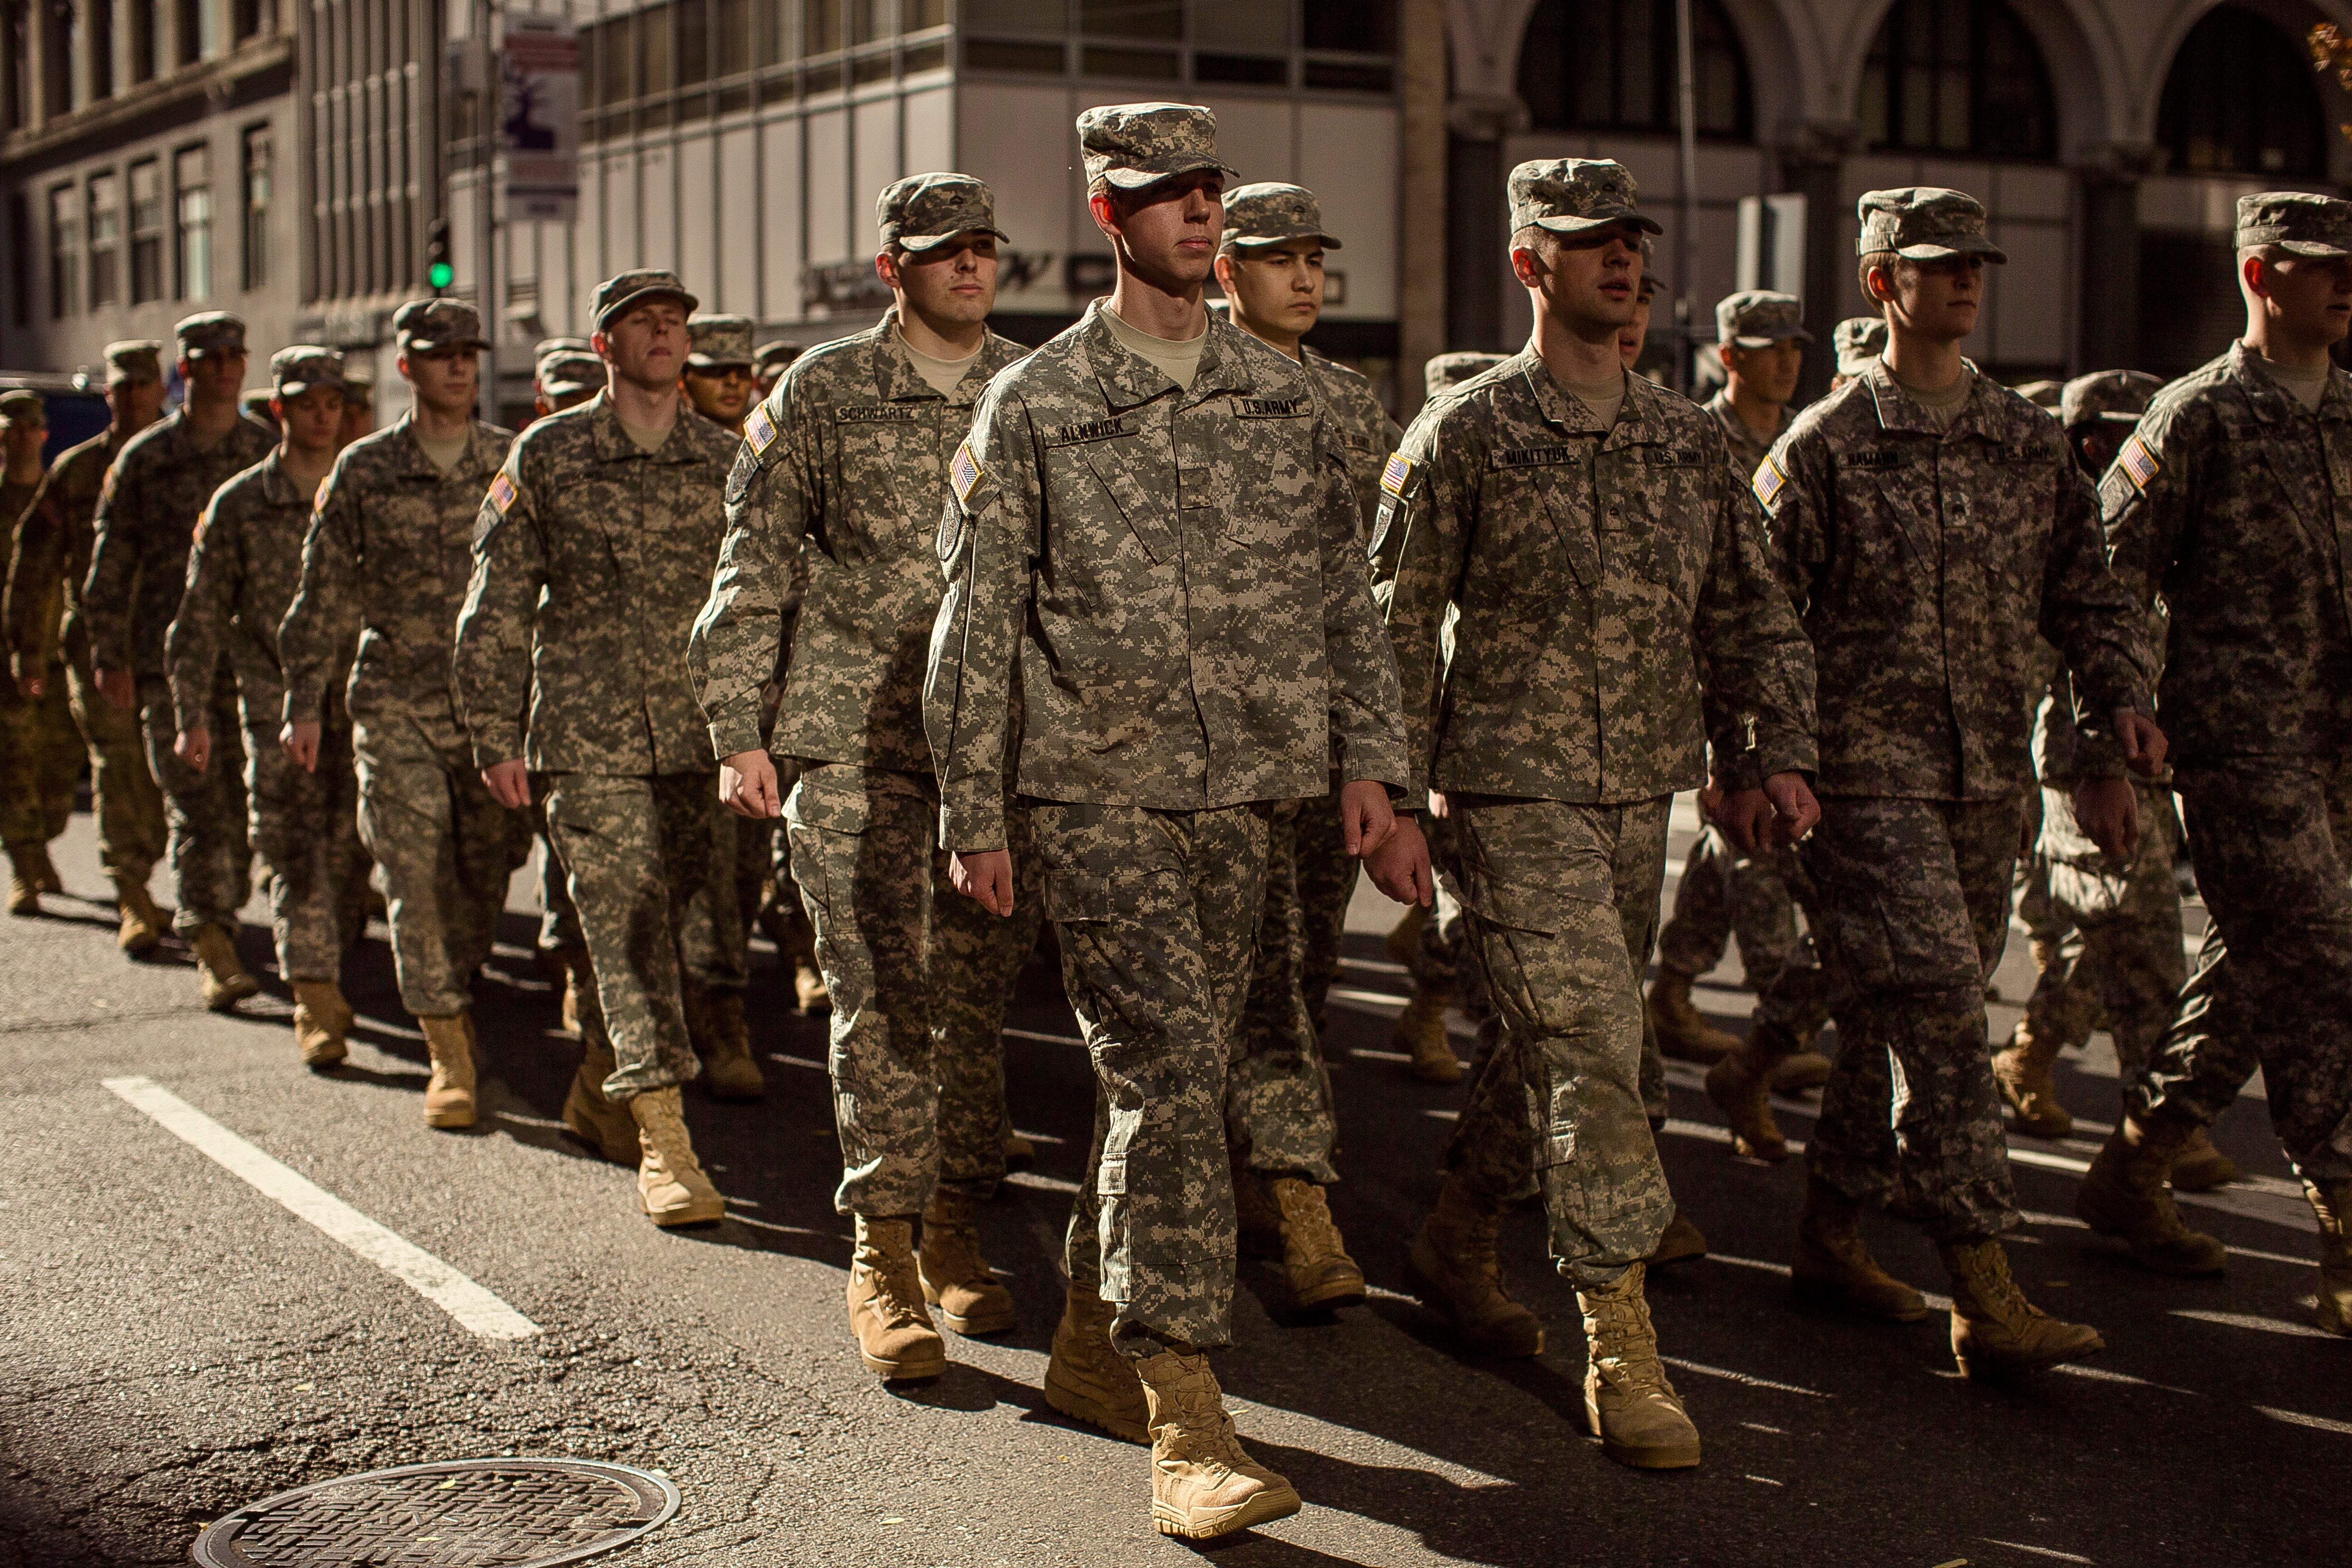 In 2011, military pensions will rise